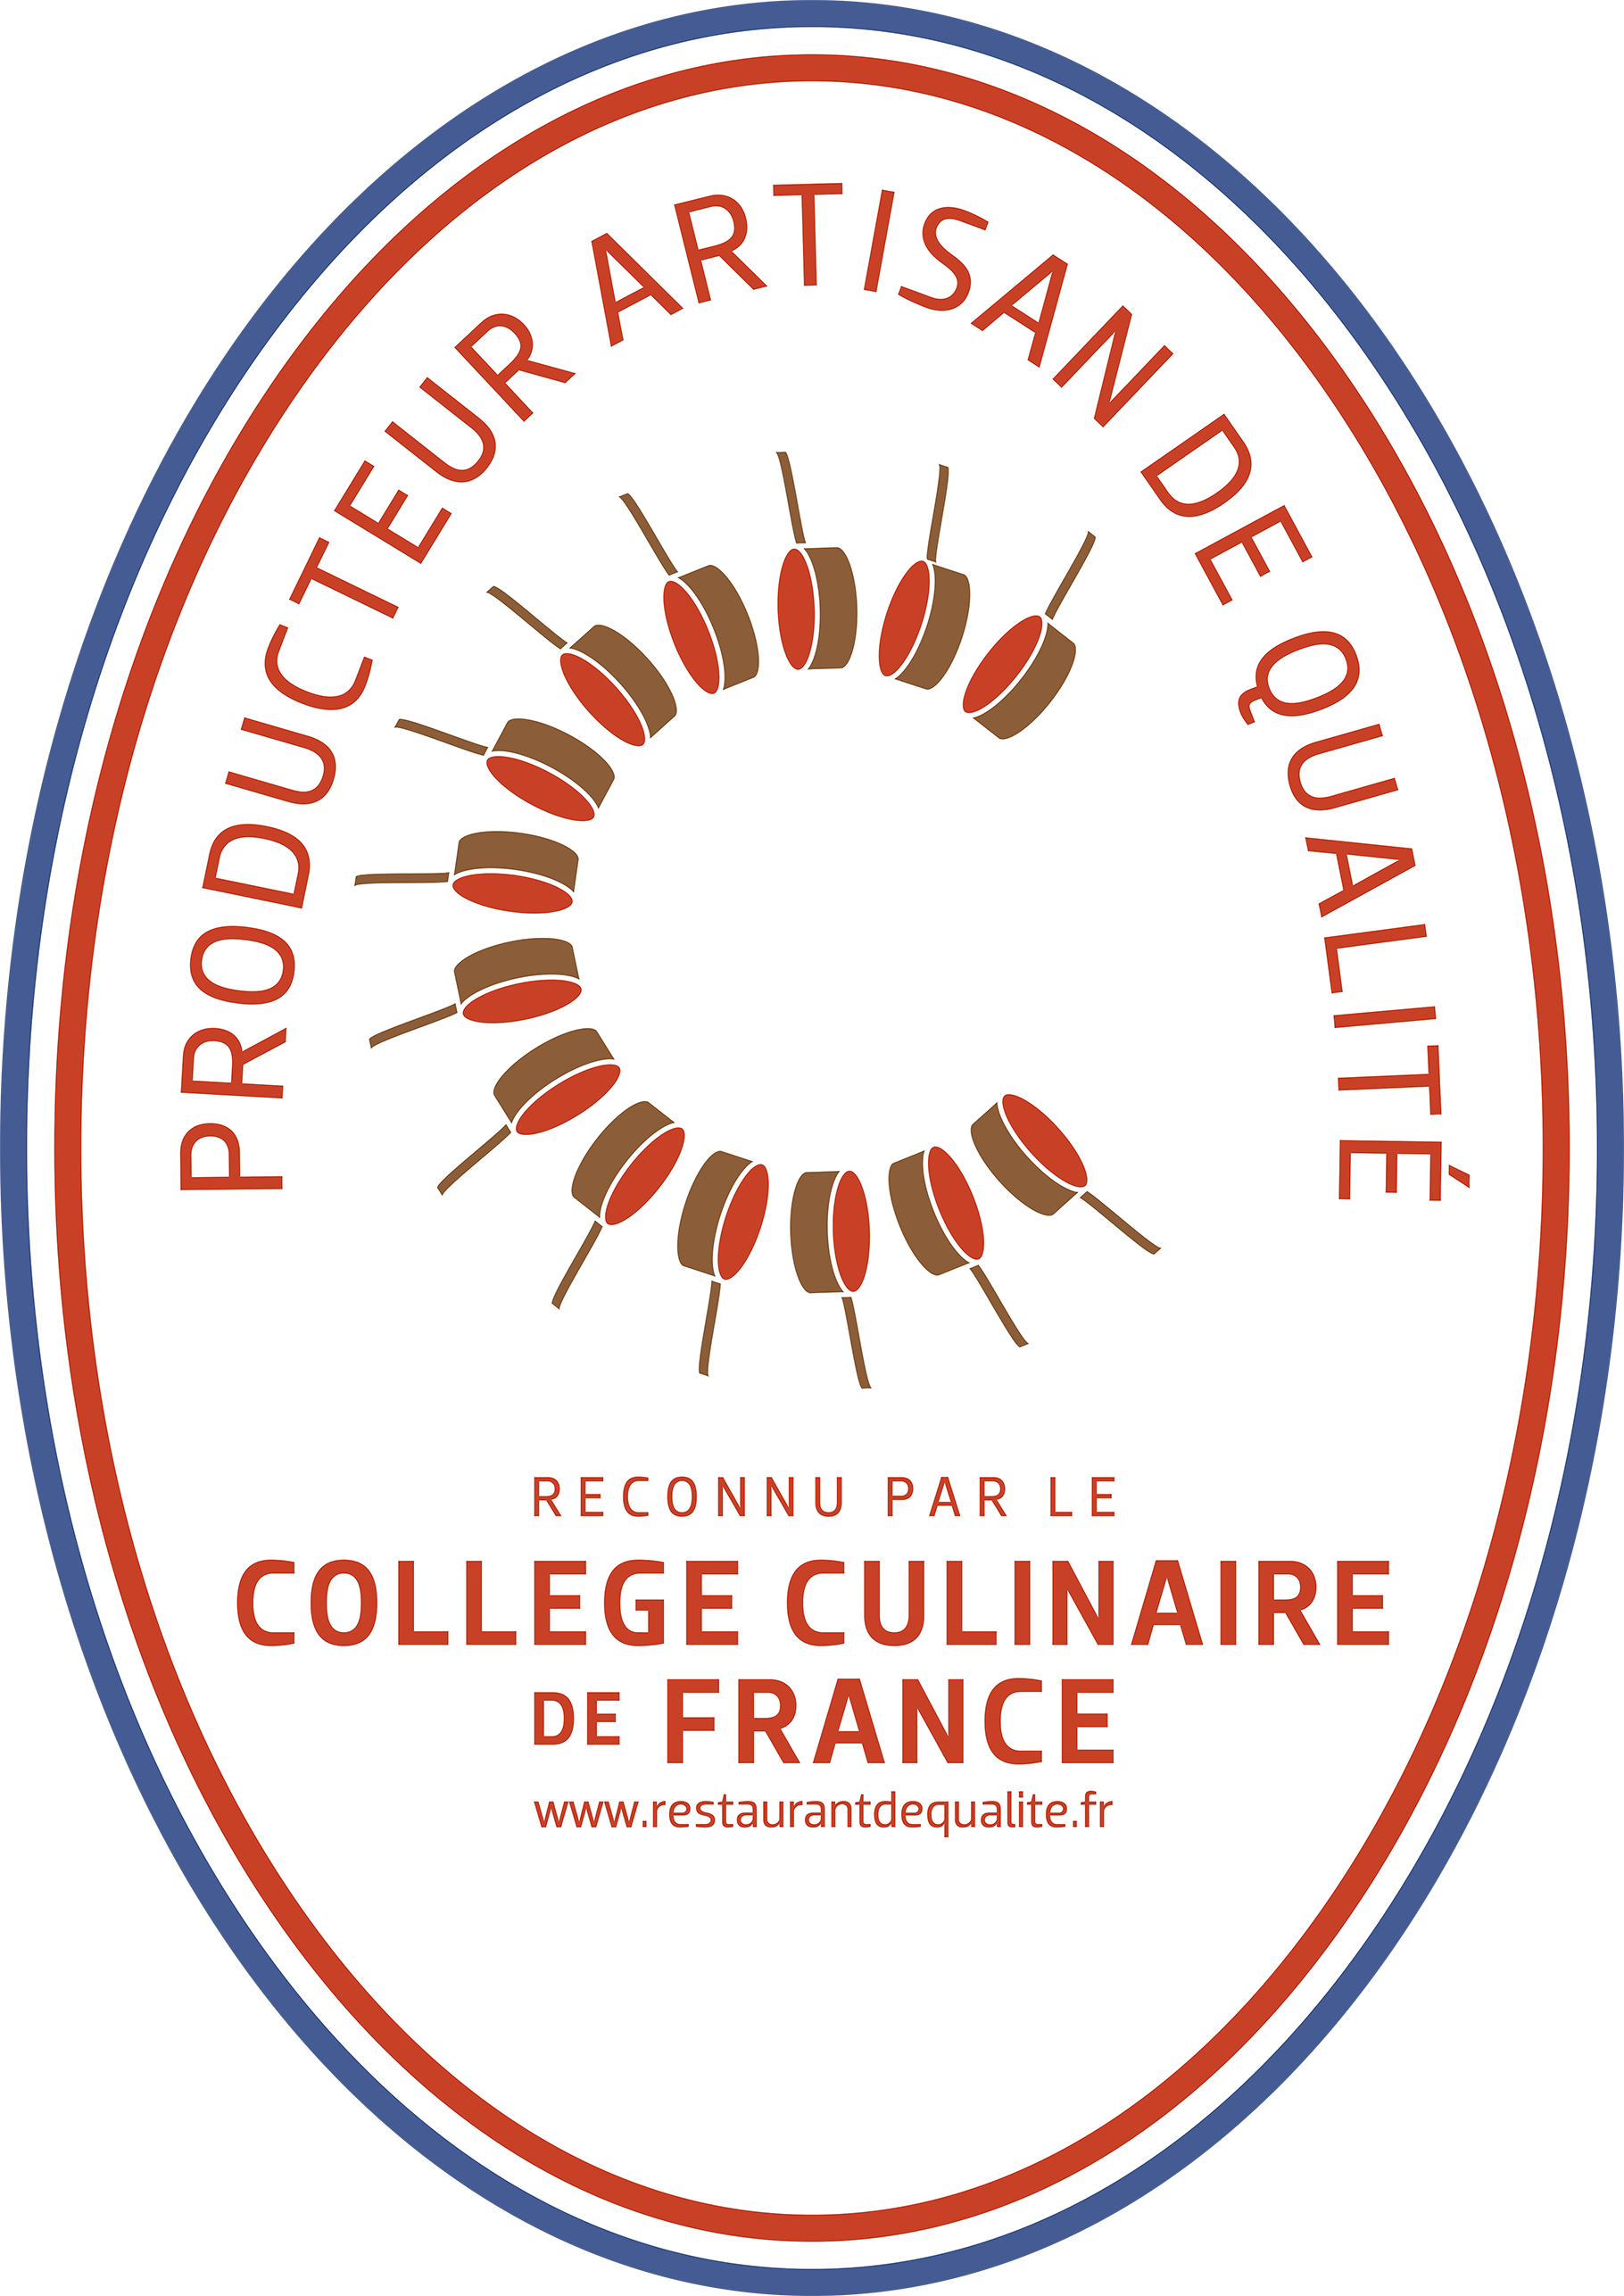 college culinaire